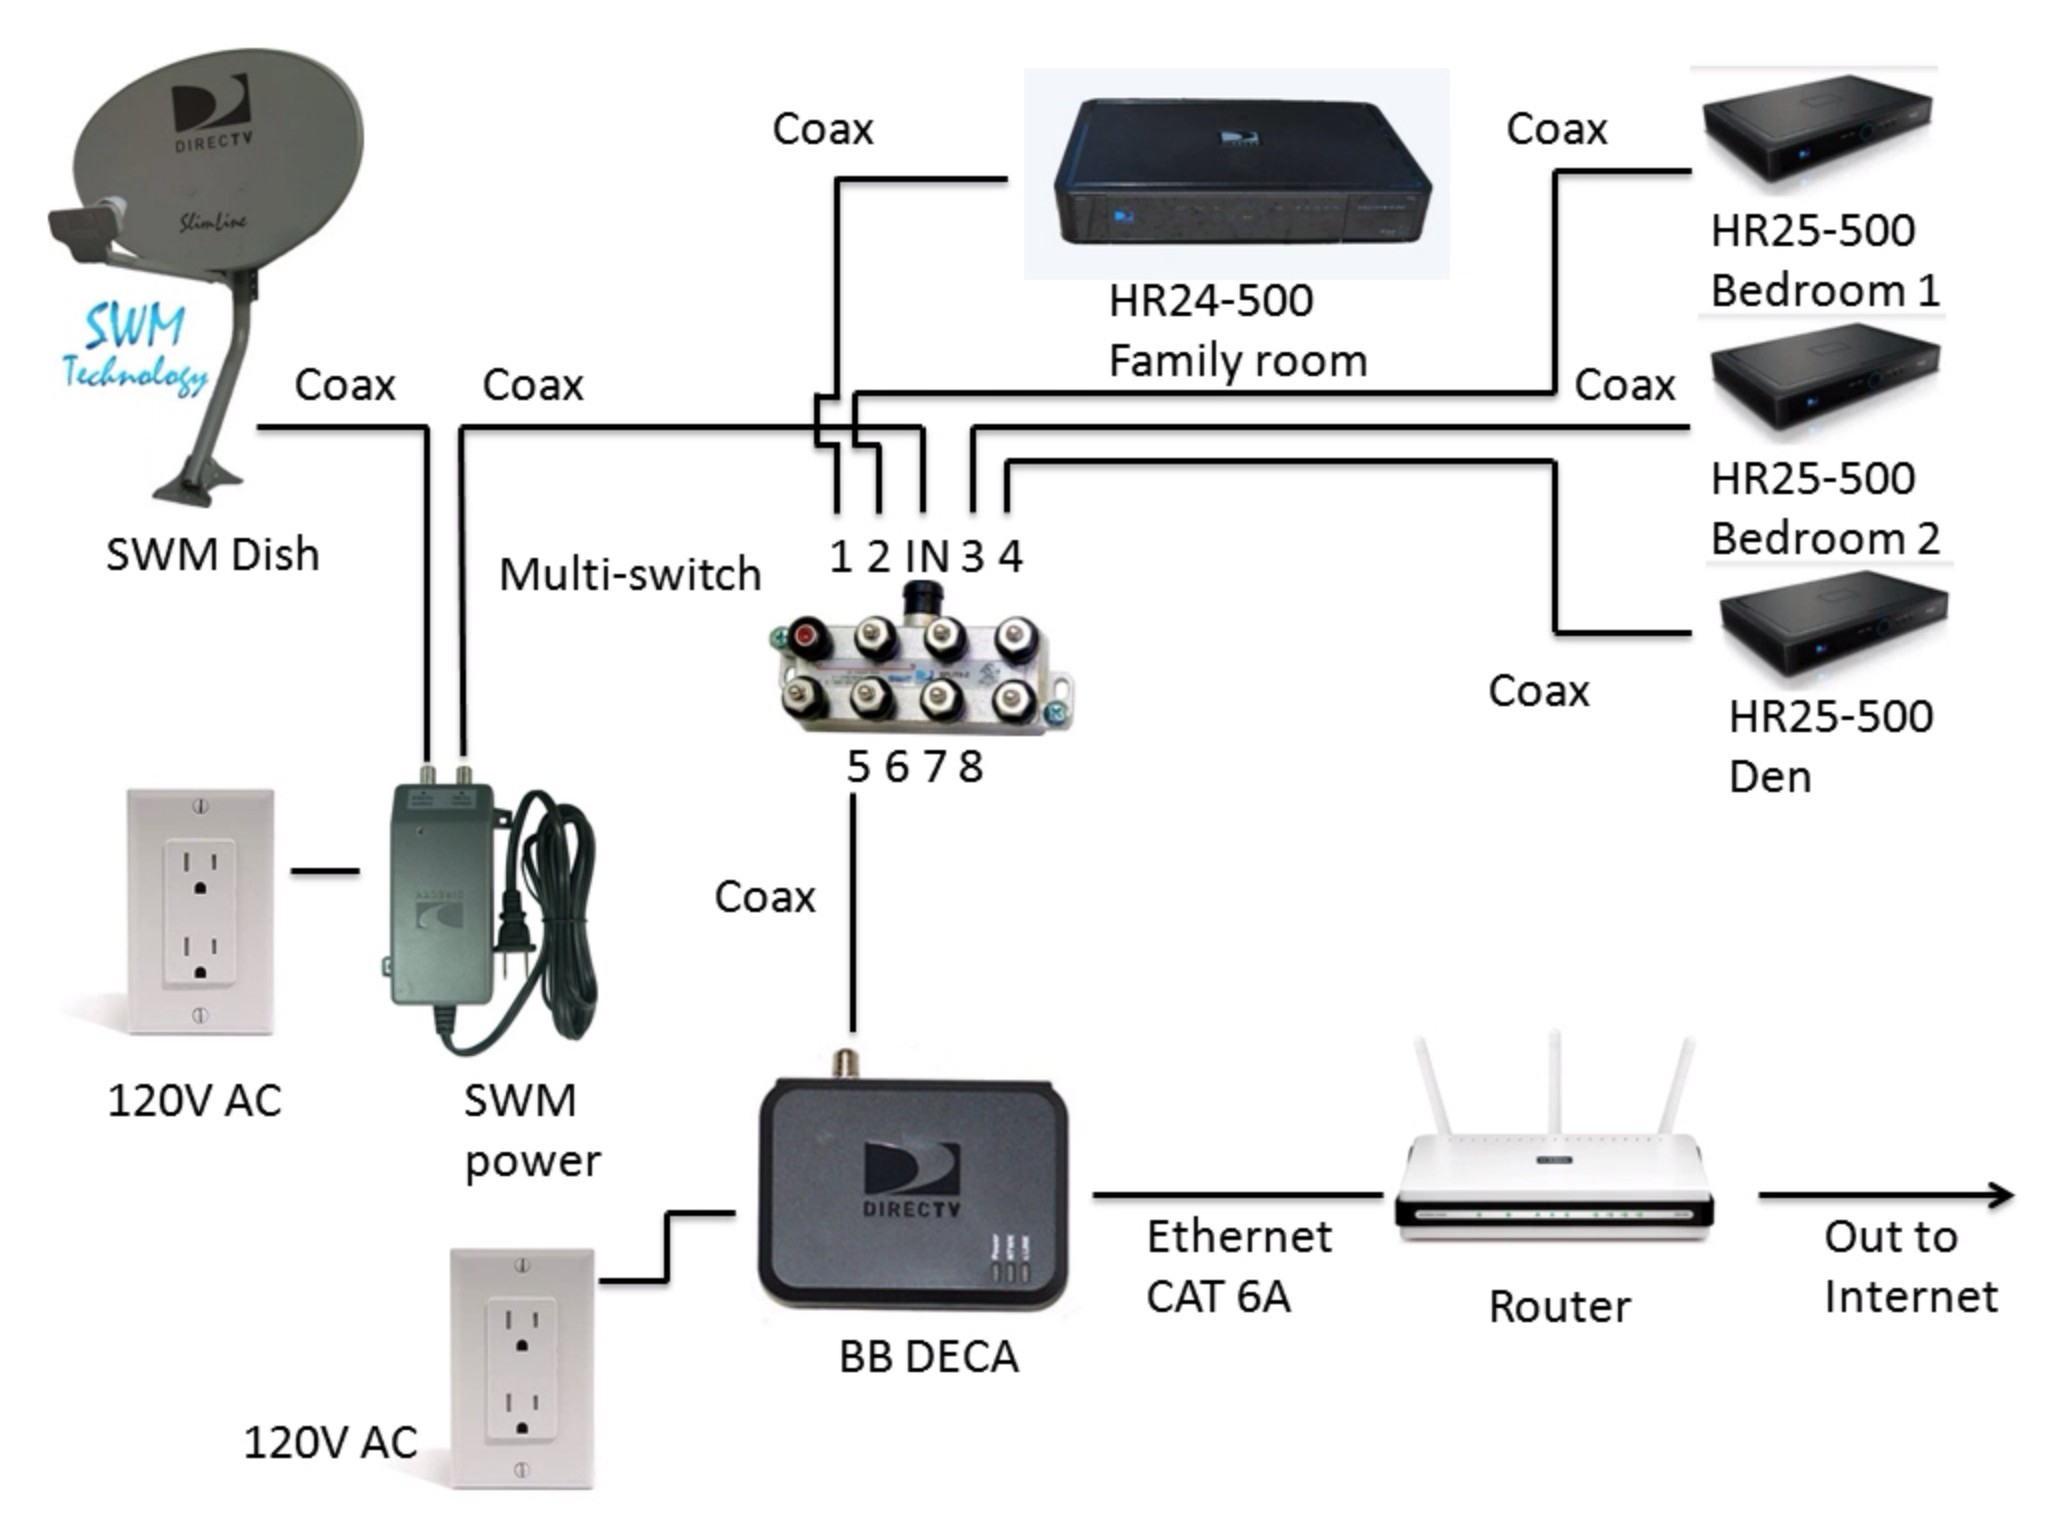 Cable Tv Wiring Diagram | Wiring Library - Rv Satellite Wiring Diagram